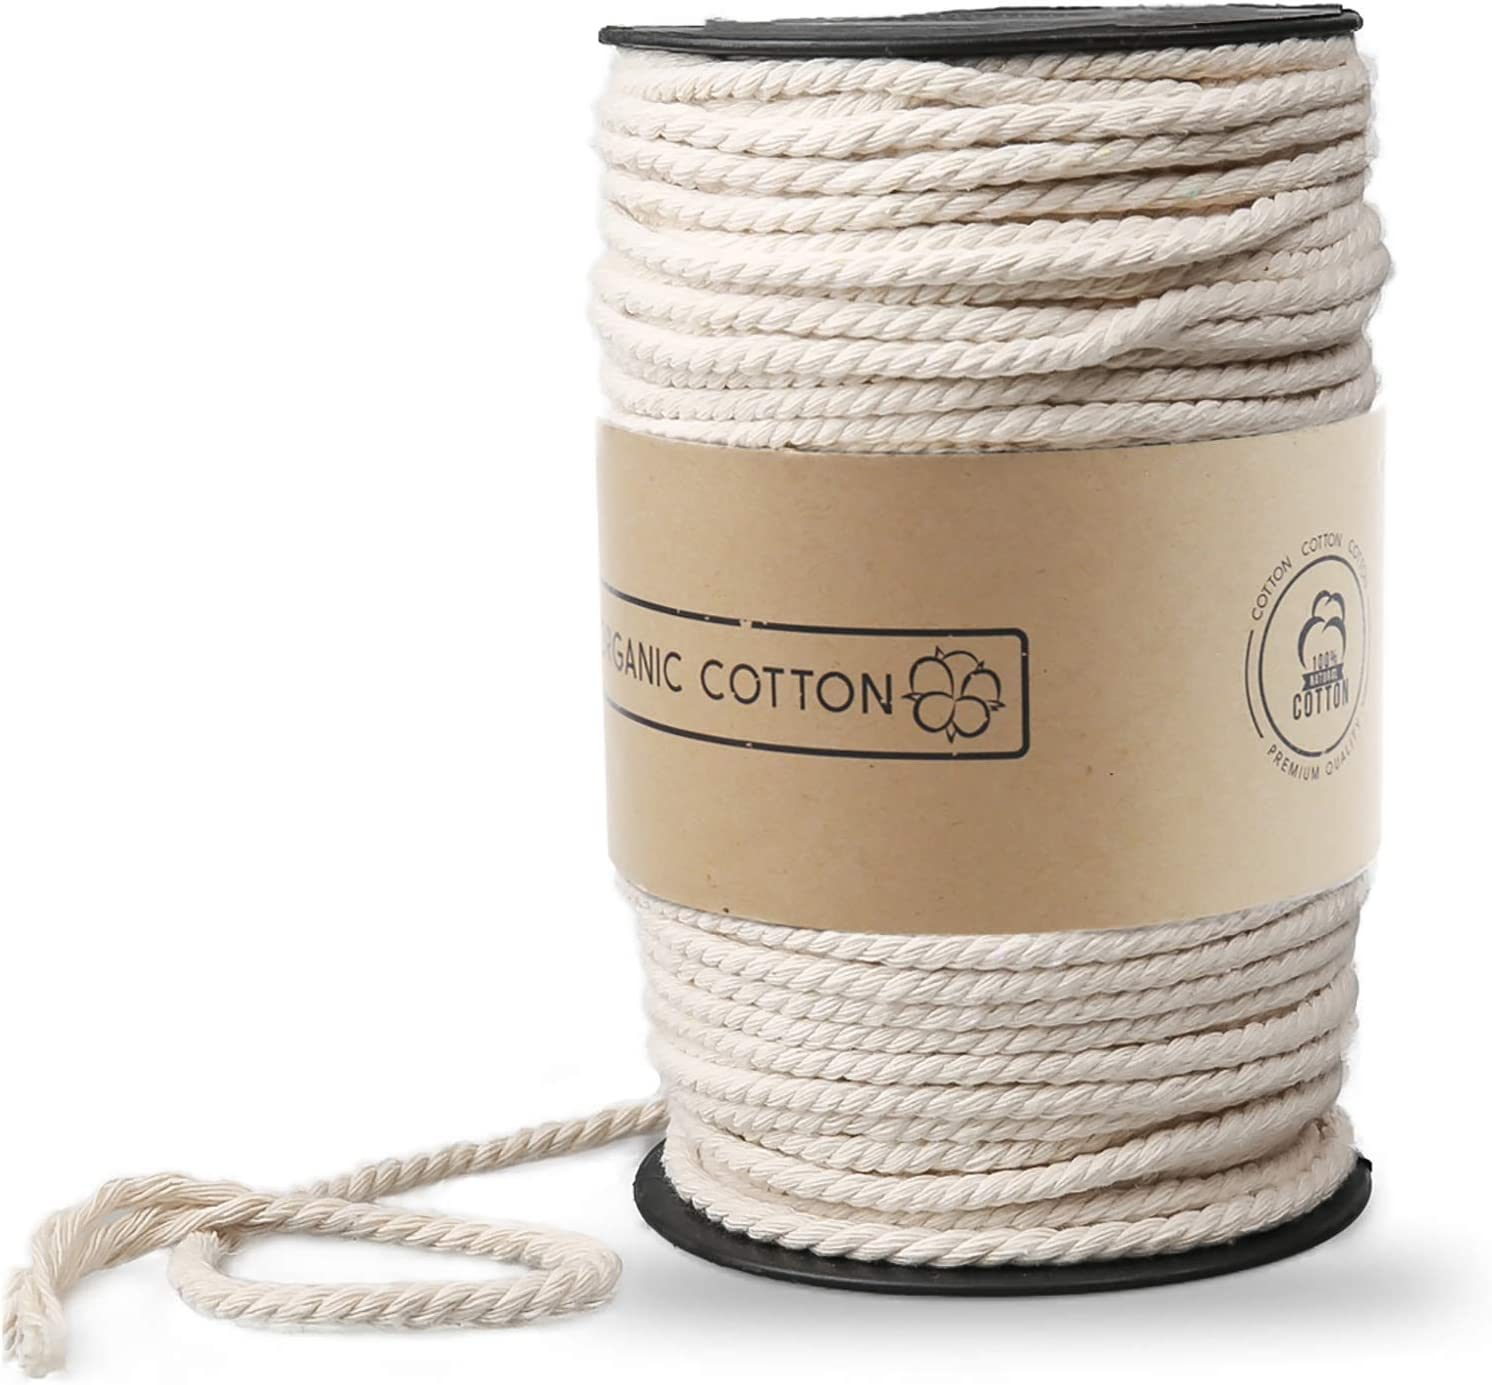 Macrame Cord Zoutog 3mm X 220 Yd About 200m Natural Cotton Soft Unstained Rope For Handmade Plant Hanger Wall Hanging Craft Making Arts Crafts Sewing